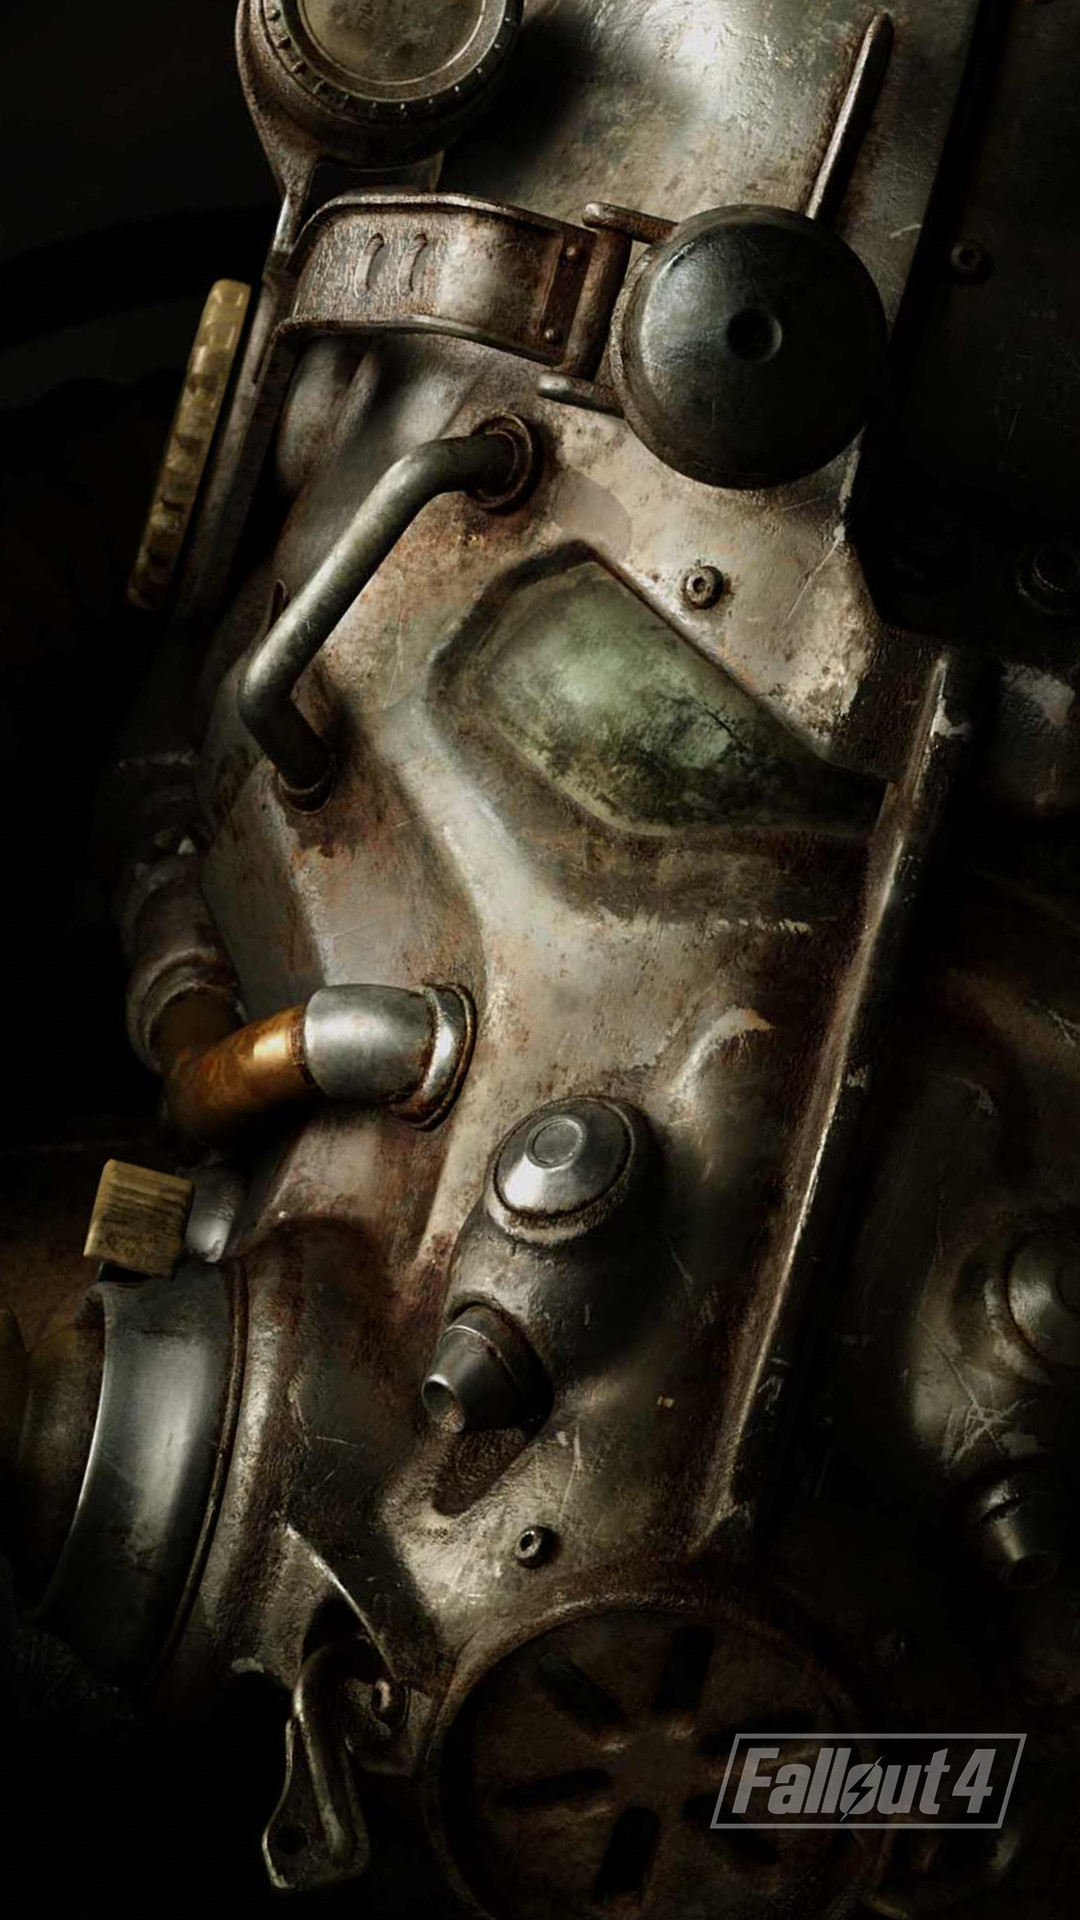 fallout 4 wallpaper for iphone 6